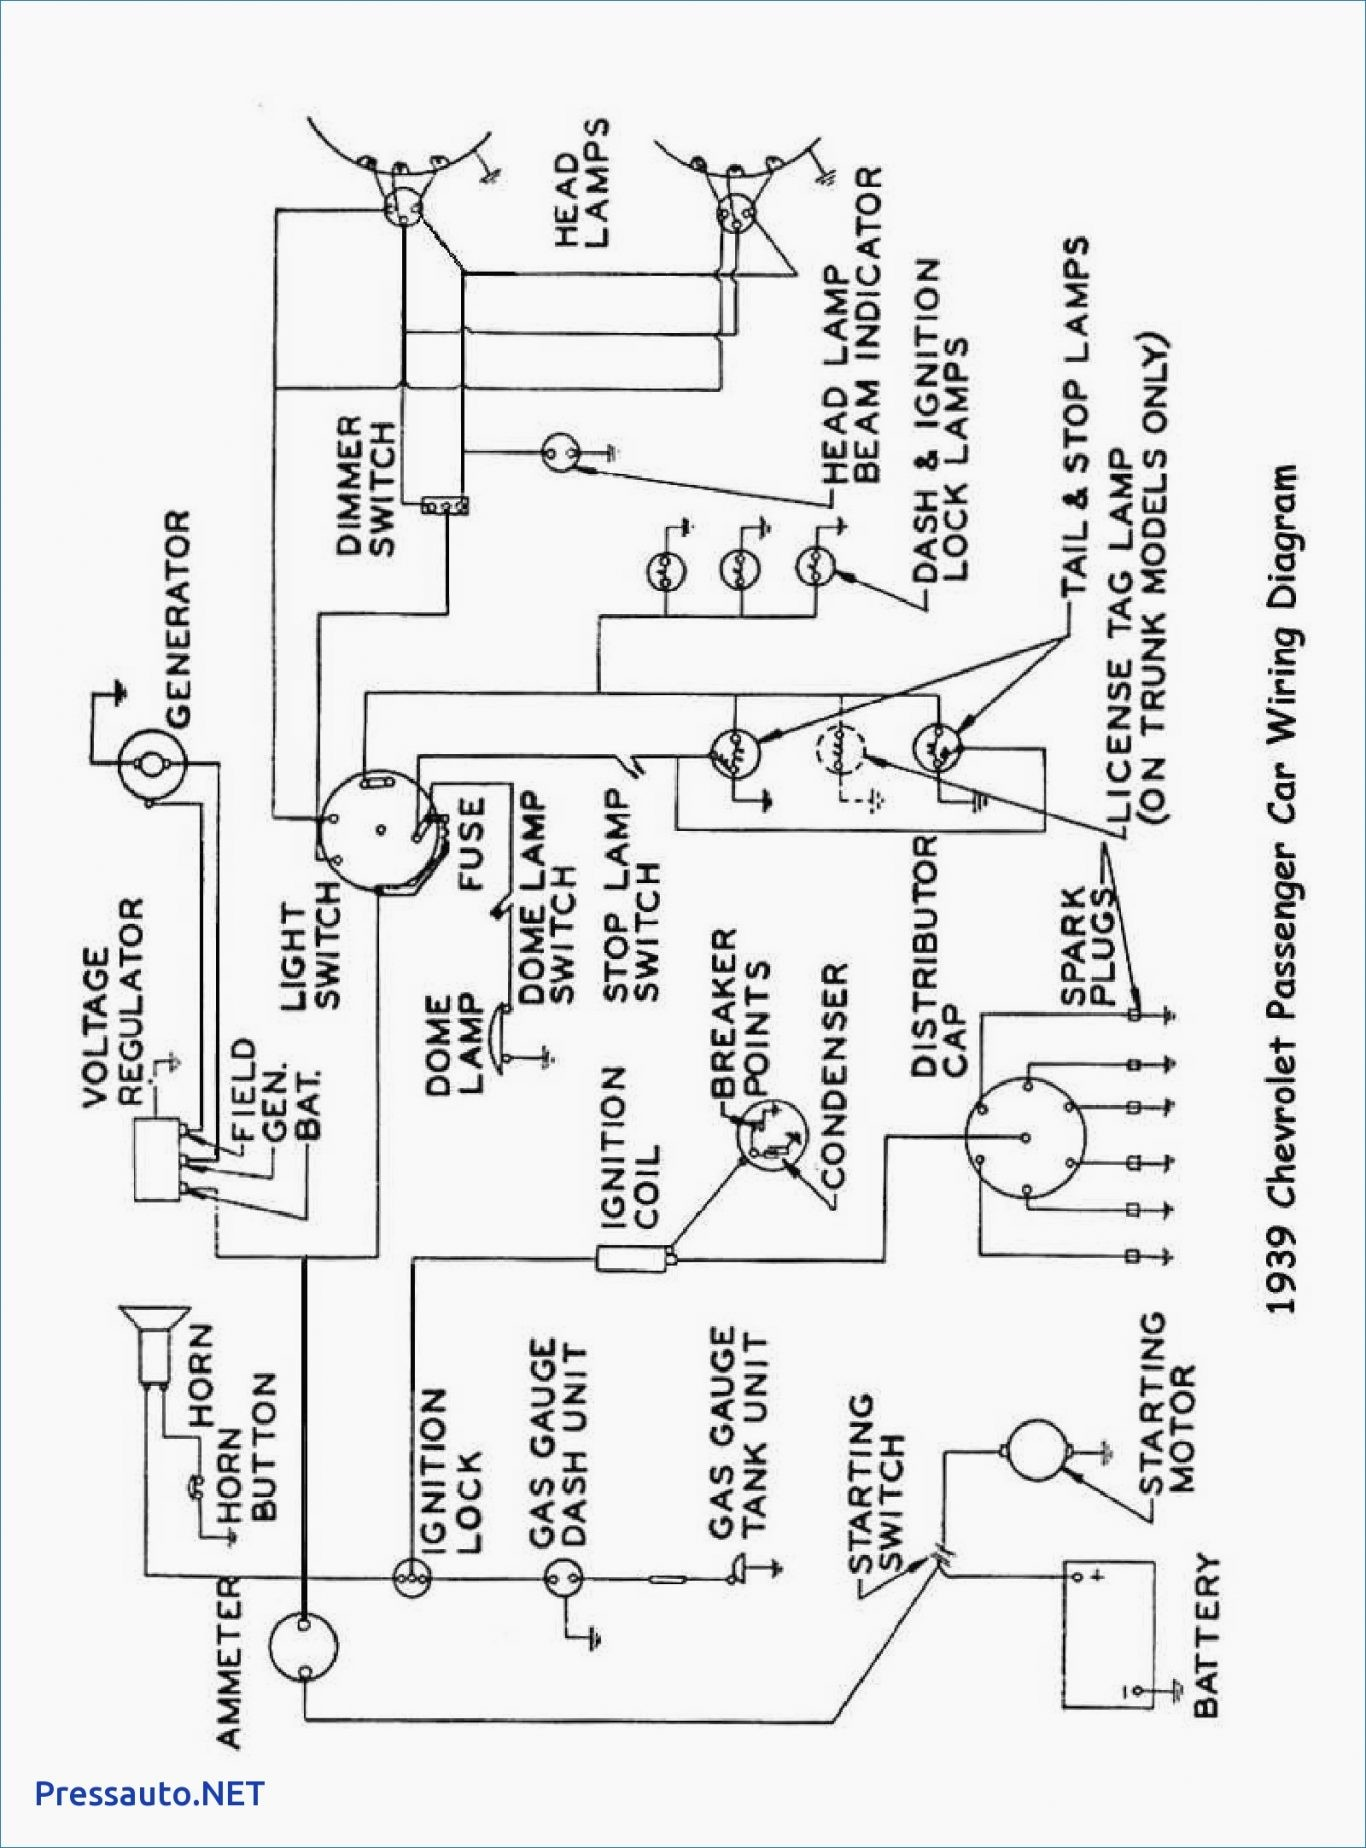 wiring diagram of a ceiling fan 2000 ford f250 4x4 light switch single database drawing at getdrawings free for personal use hunter